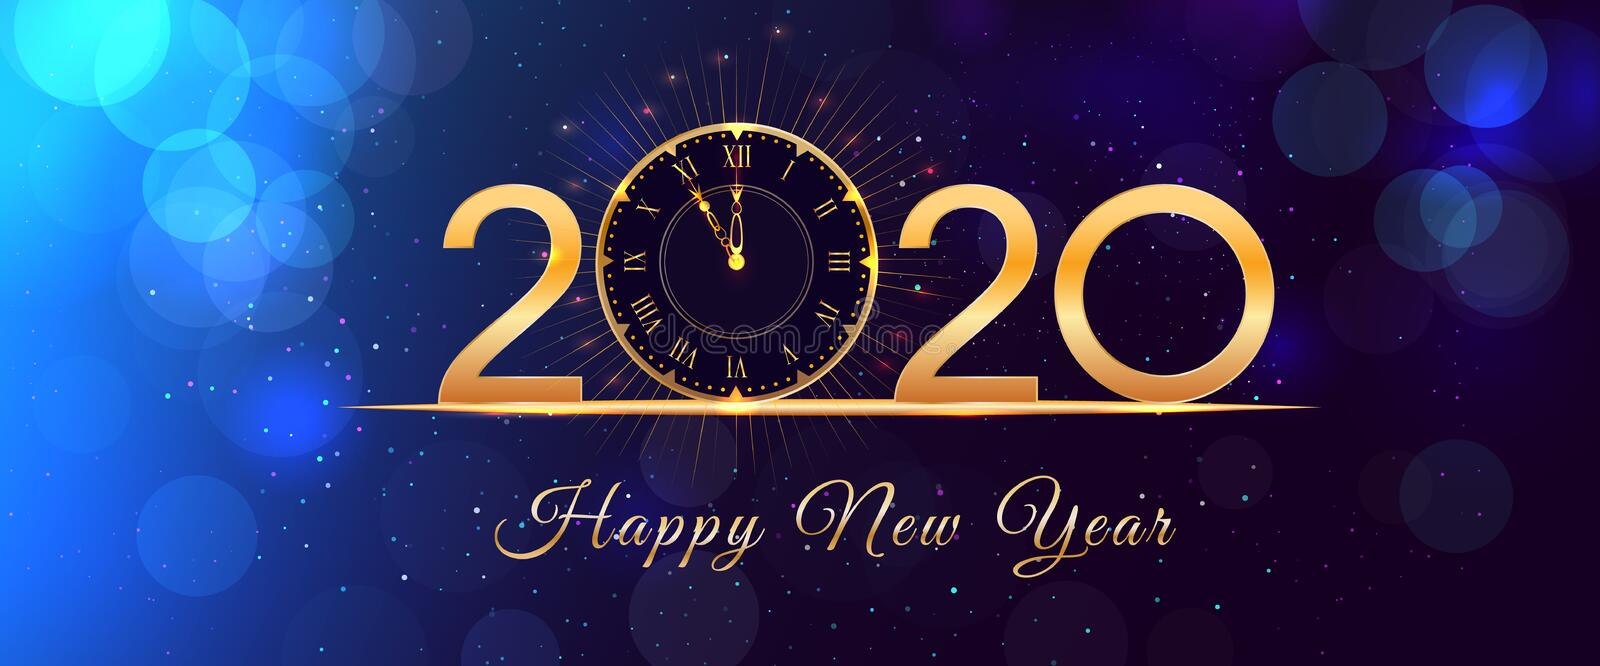 Glowing Clock With Greetings For New Year Over Colorful